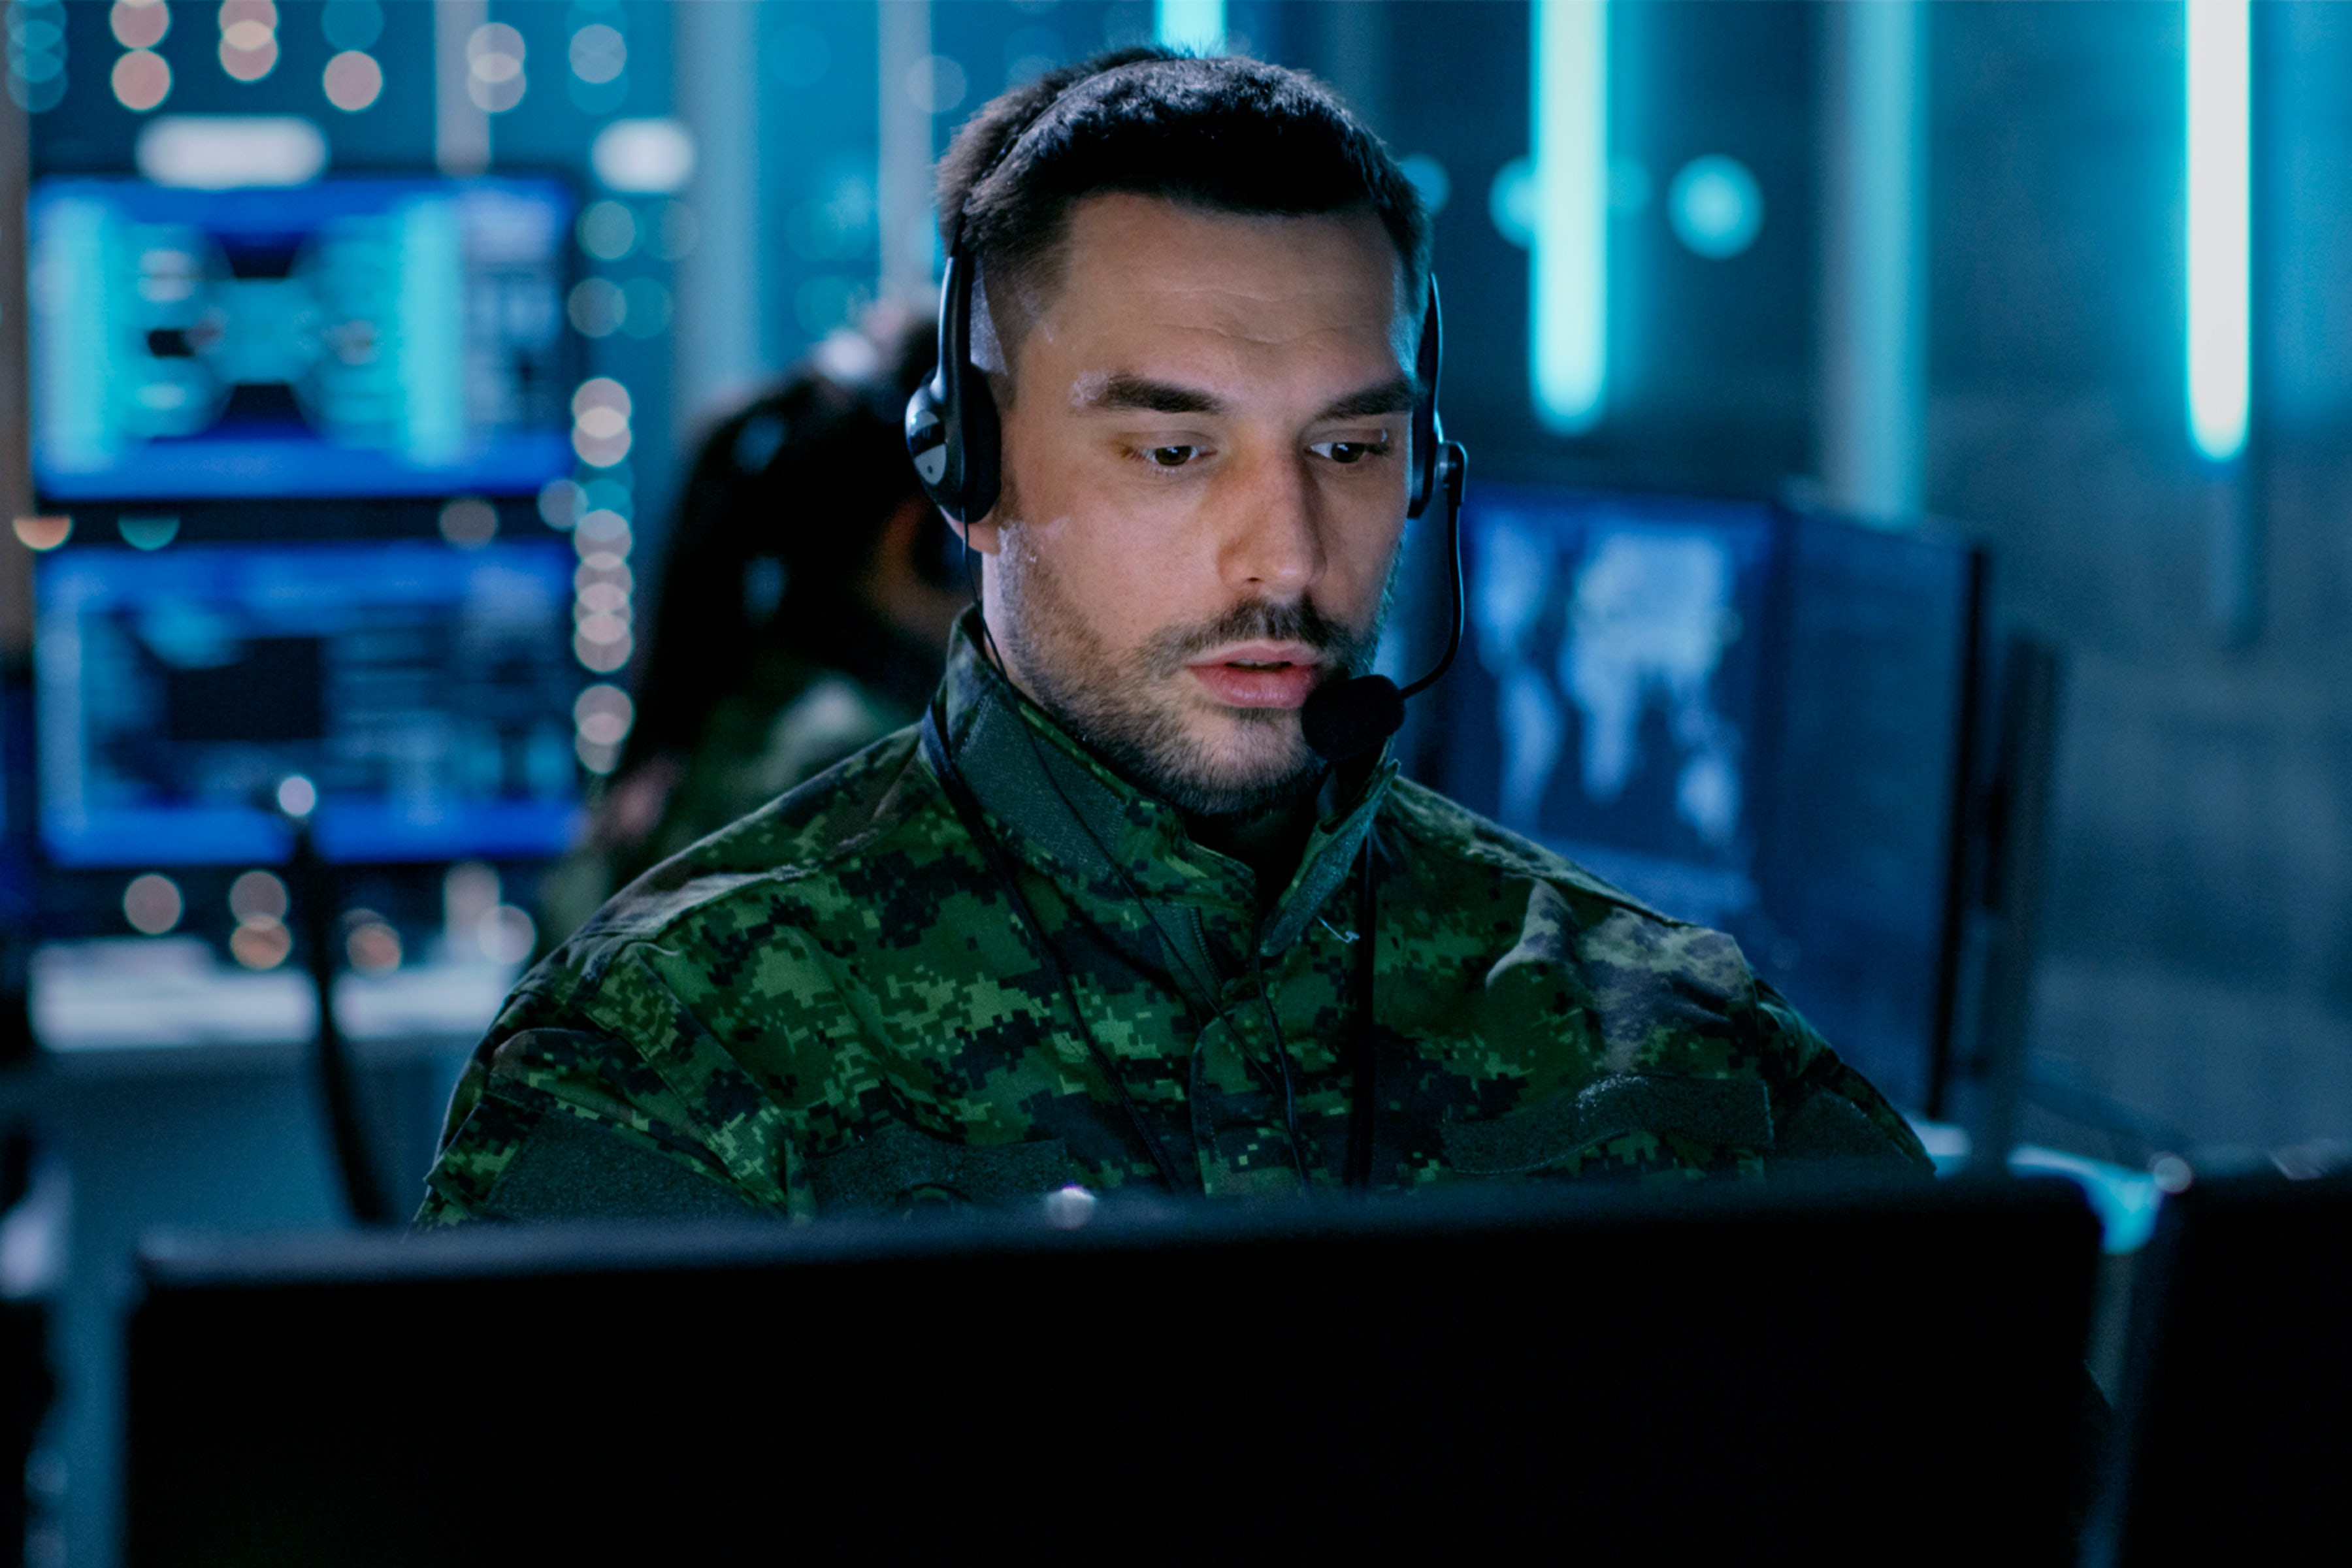 military personnel on computer with a headset